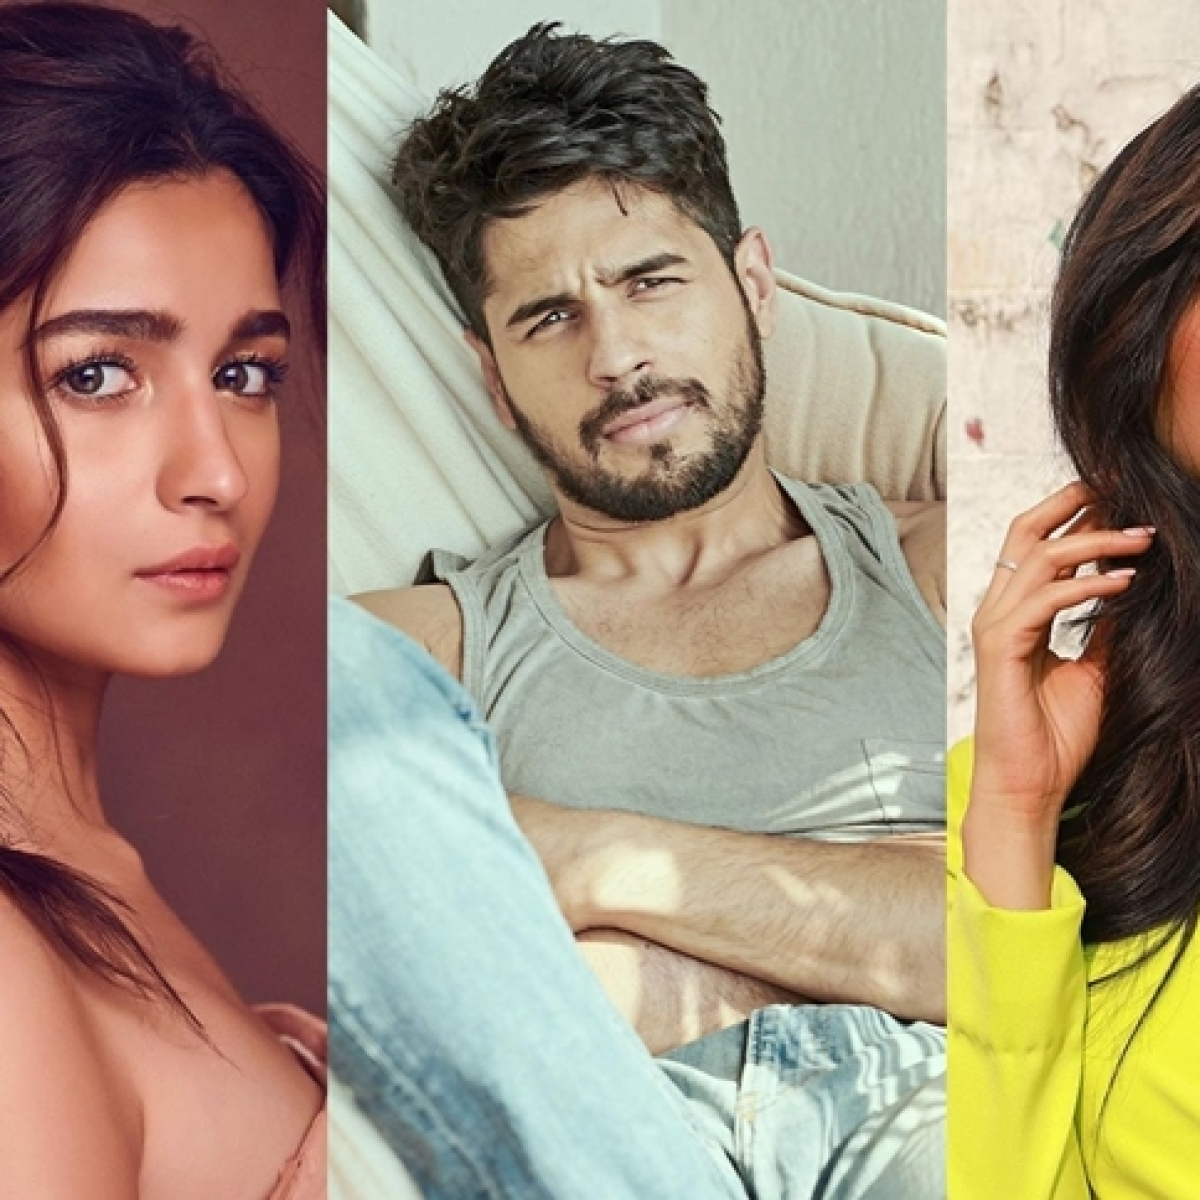 Can't get over 'Alia': Sidharth Malhotra's dating dilemma